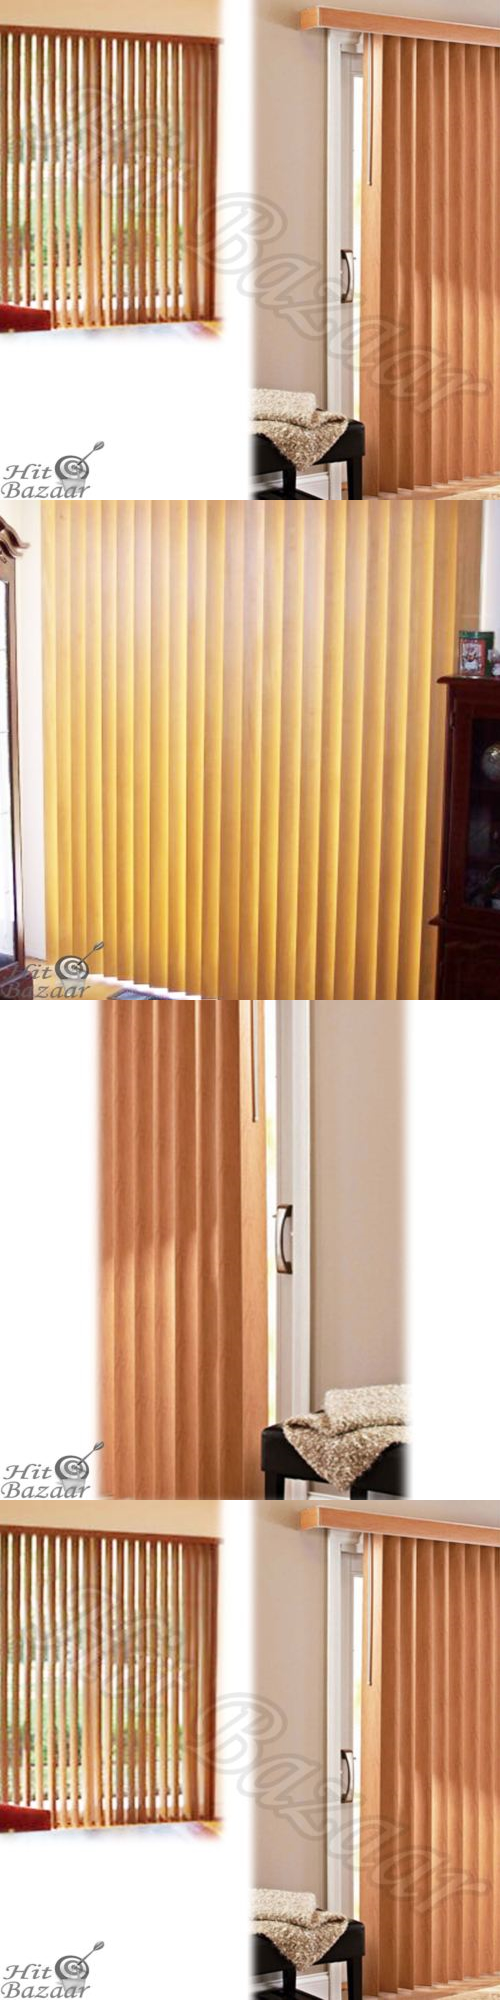 Blinds and shades vertical blinds garden pvc privacy shades